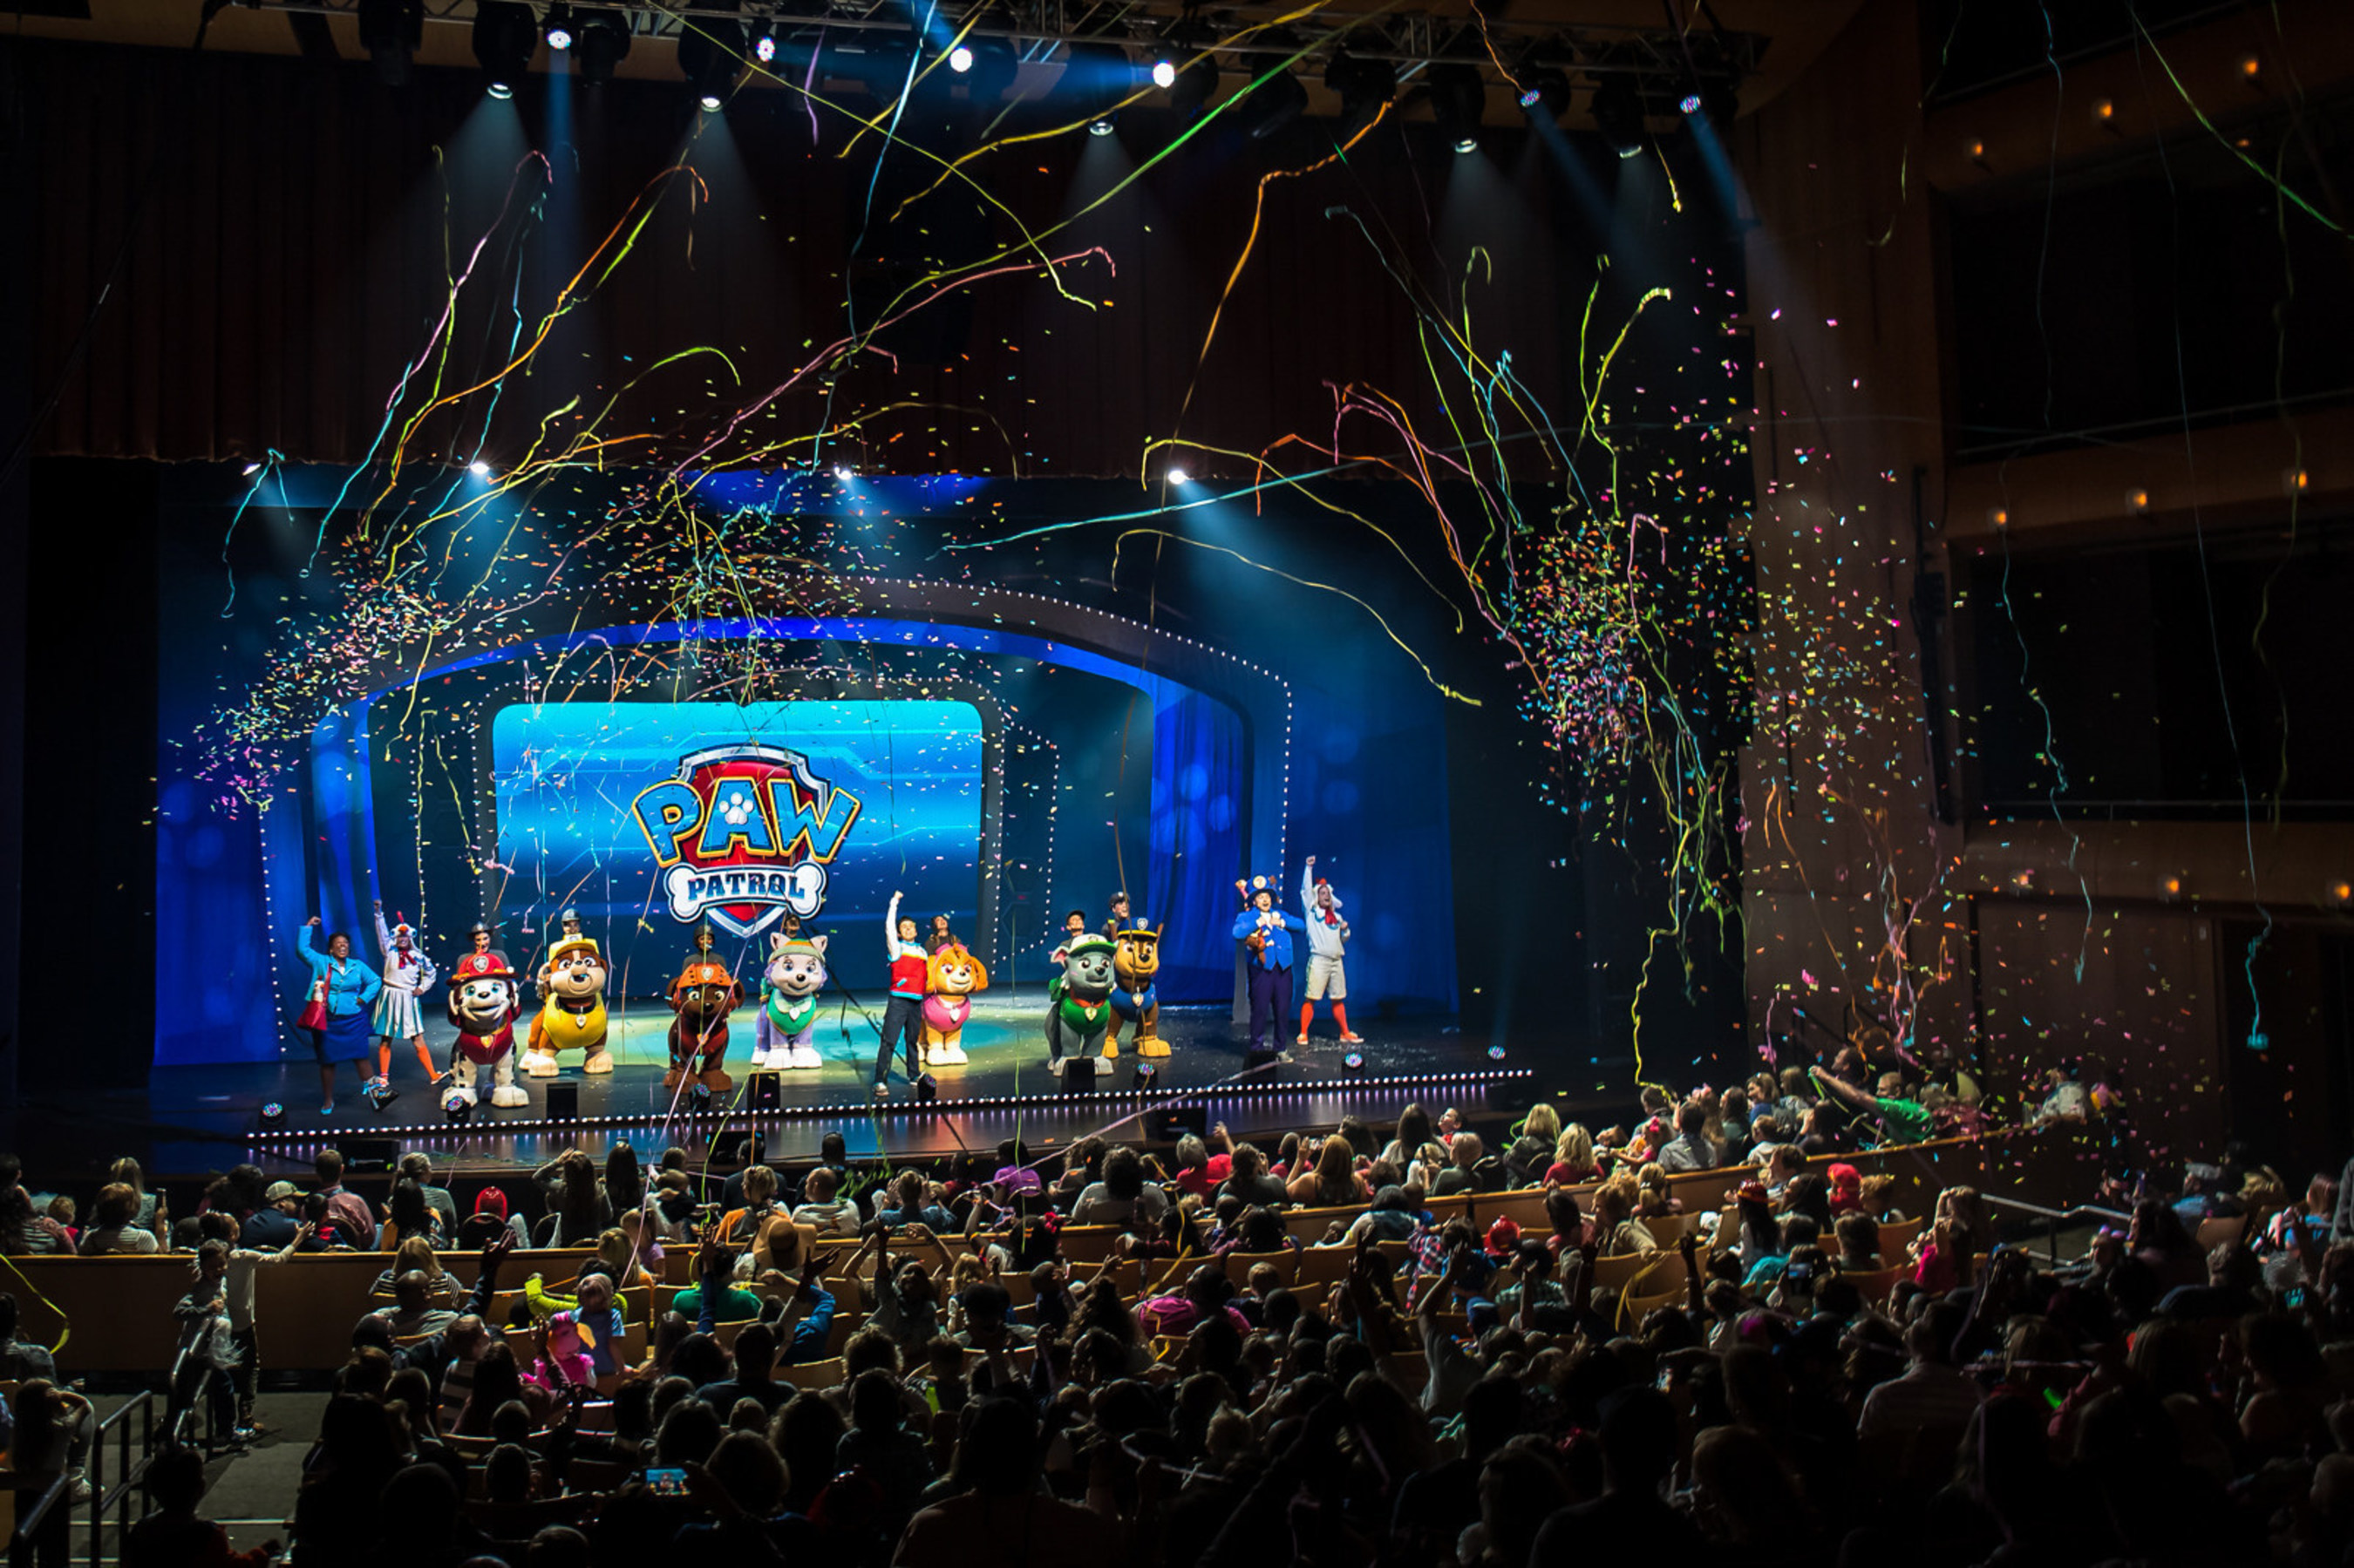 PAW Patrol Live!, based on the hit preschool series PAW Patrol, which airs on Nickelodeon and is produced by Spin Master Entertainment, is a Broadway-style musical adventure with plenty of entertainment for the entire family. (photos courtesy of VStar Entertainment Group and Nickelodeon)